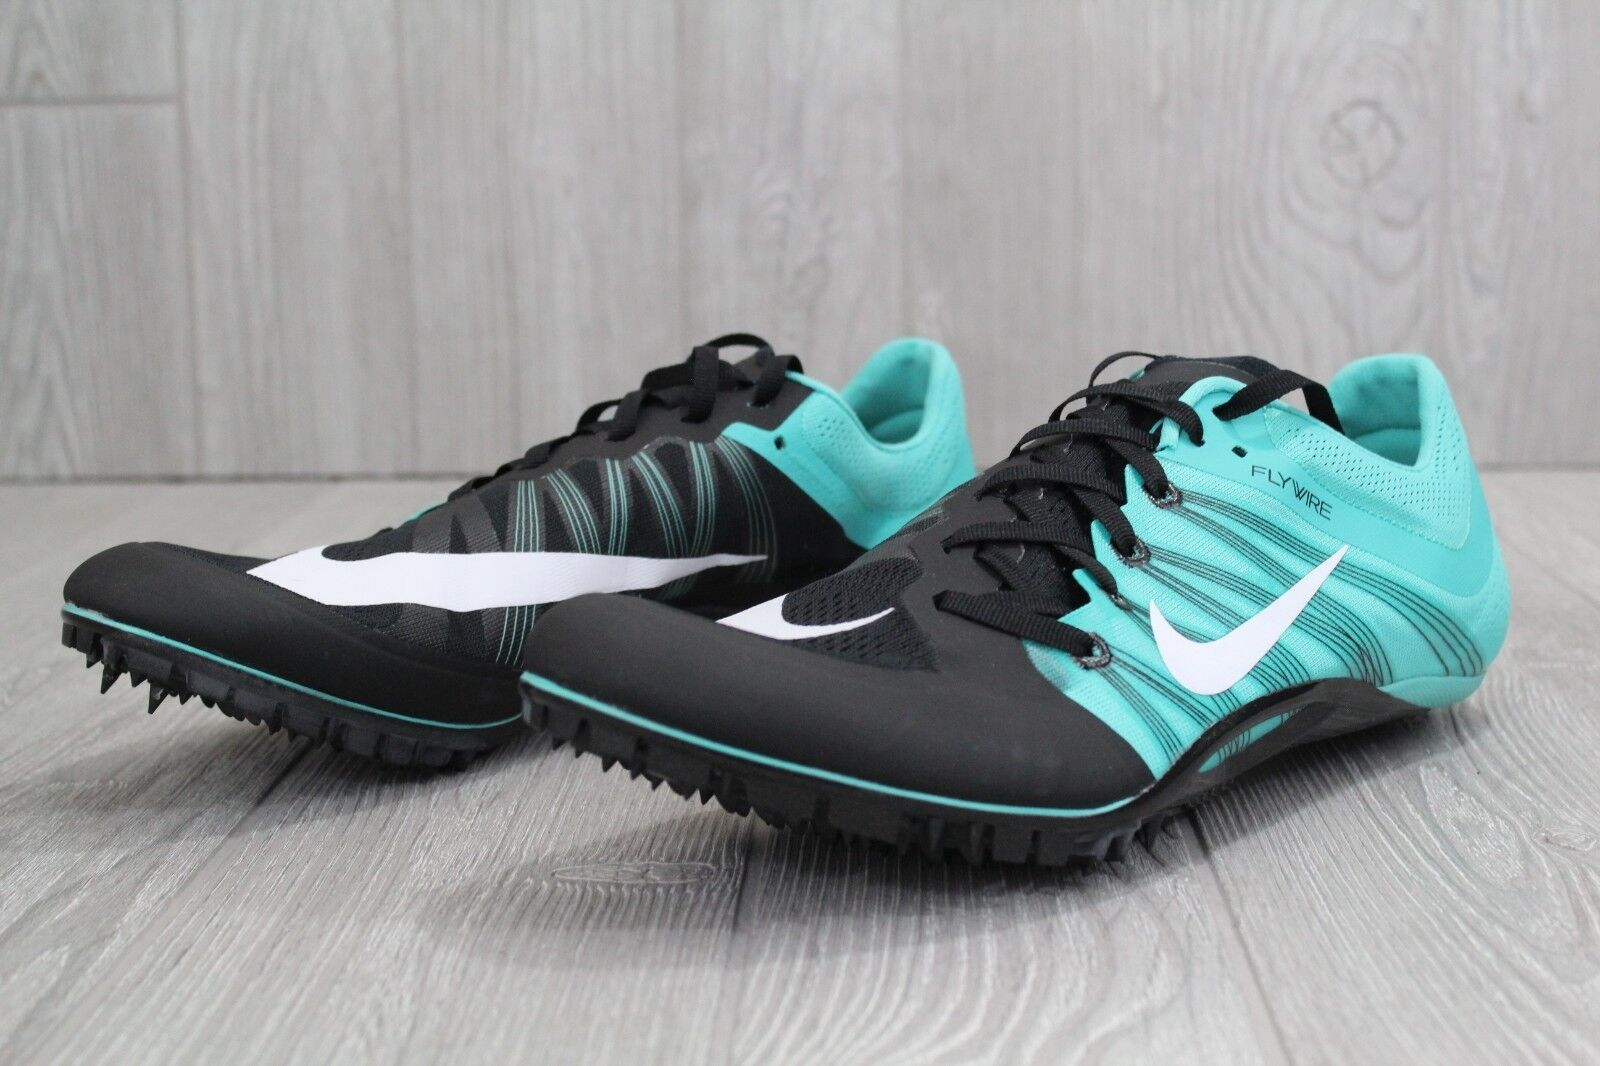 6b1dad98f4d5 ... 30 New Nike Zoom Ja Fly 2 2 2 Mens Cleats Track Spikes 705373-013 ...